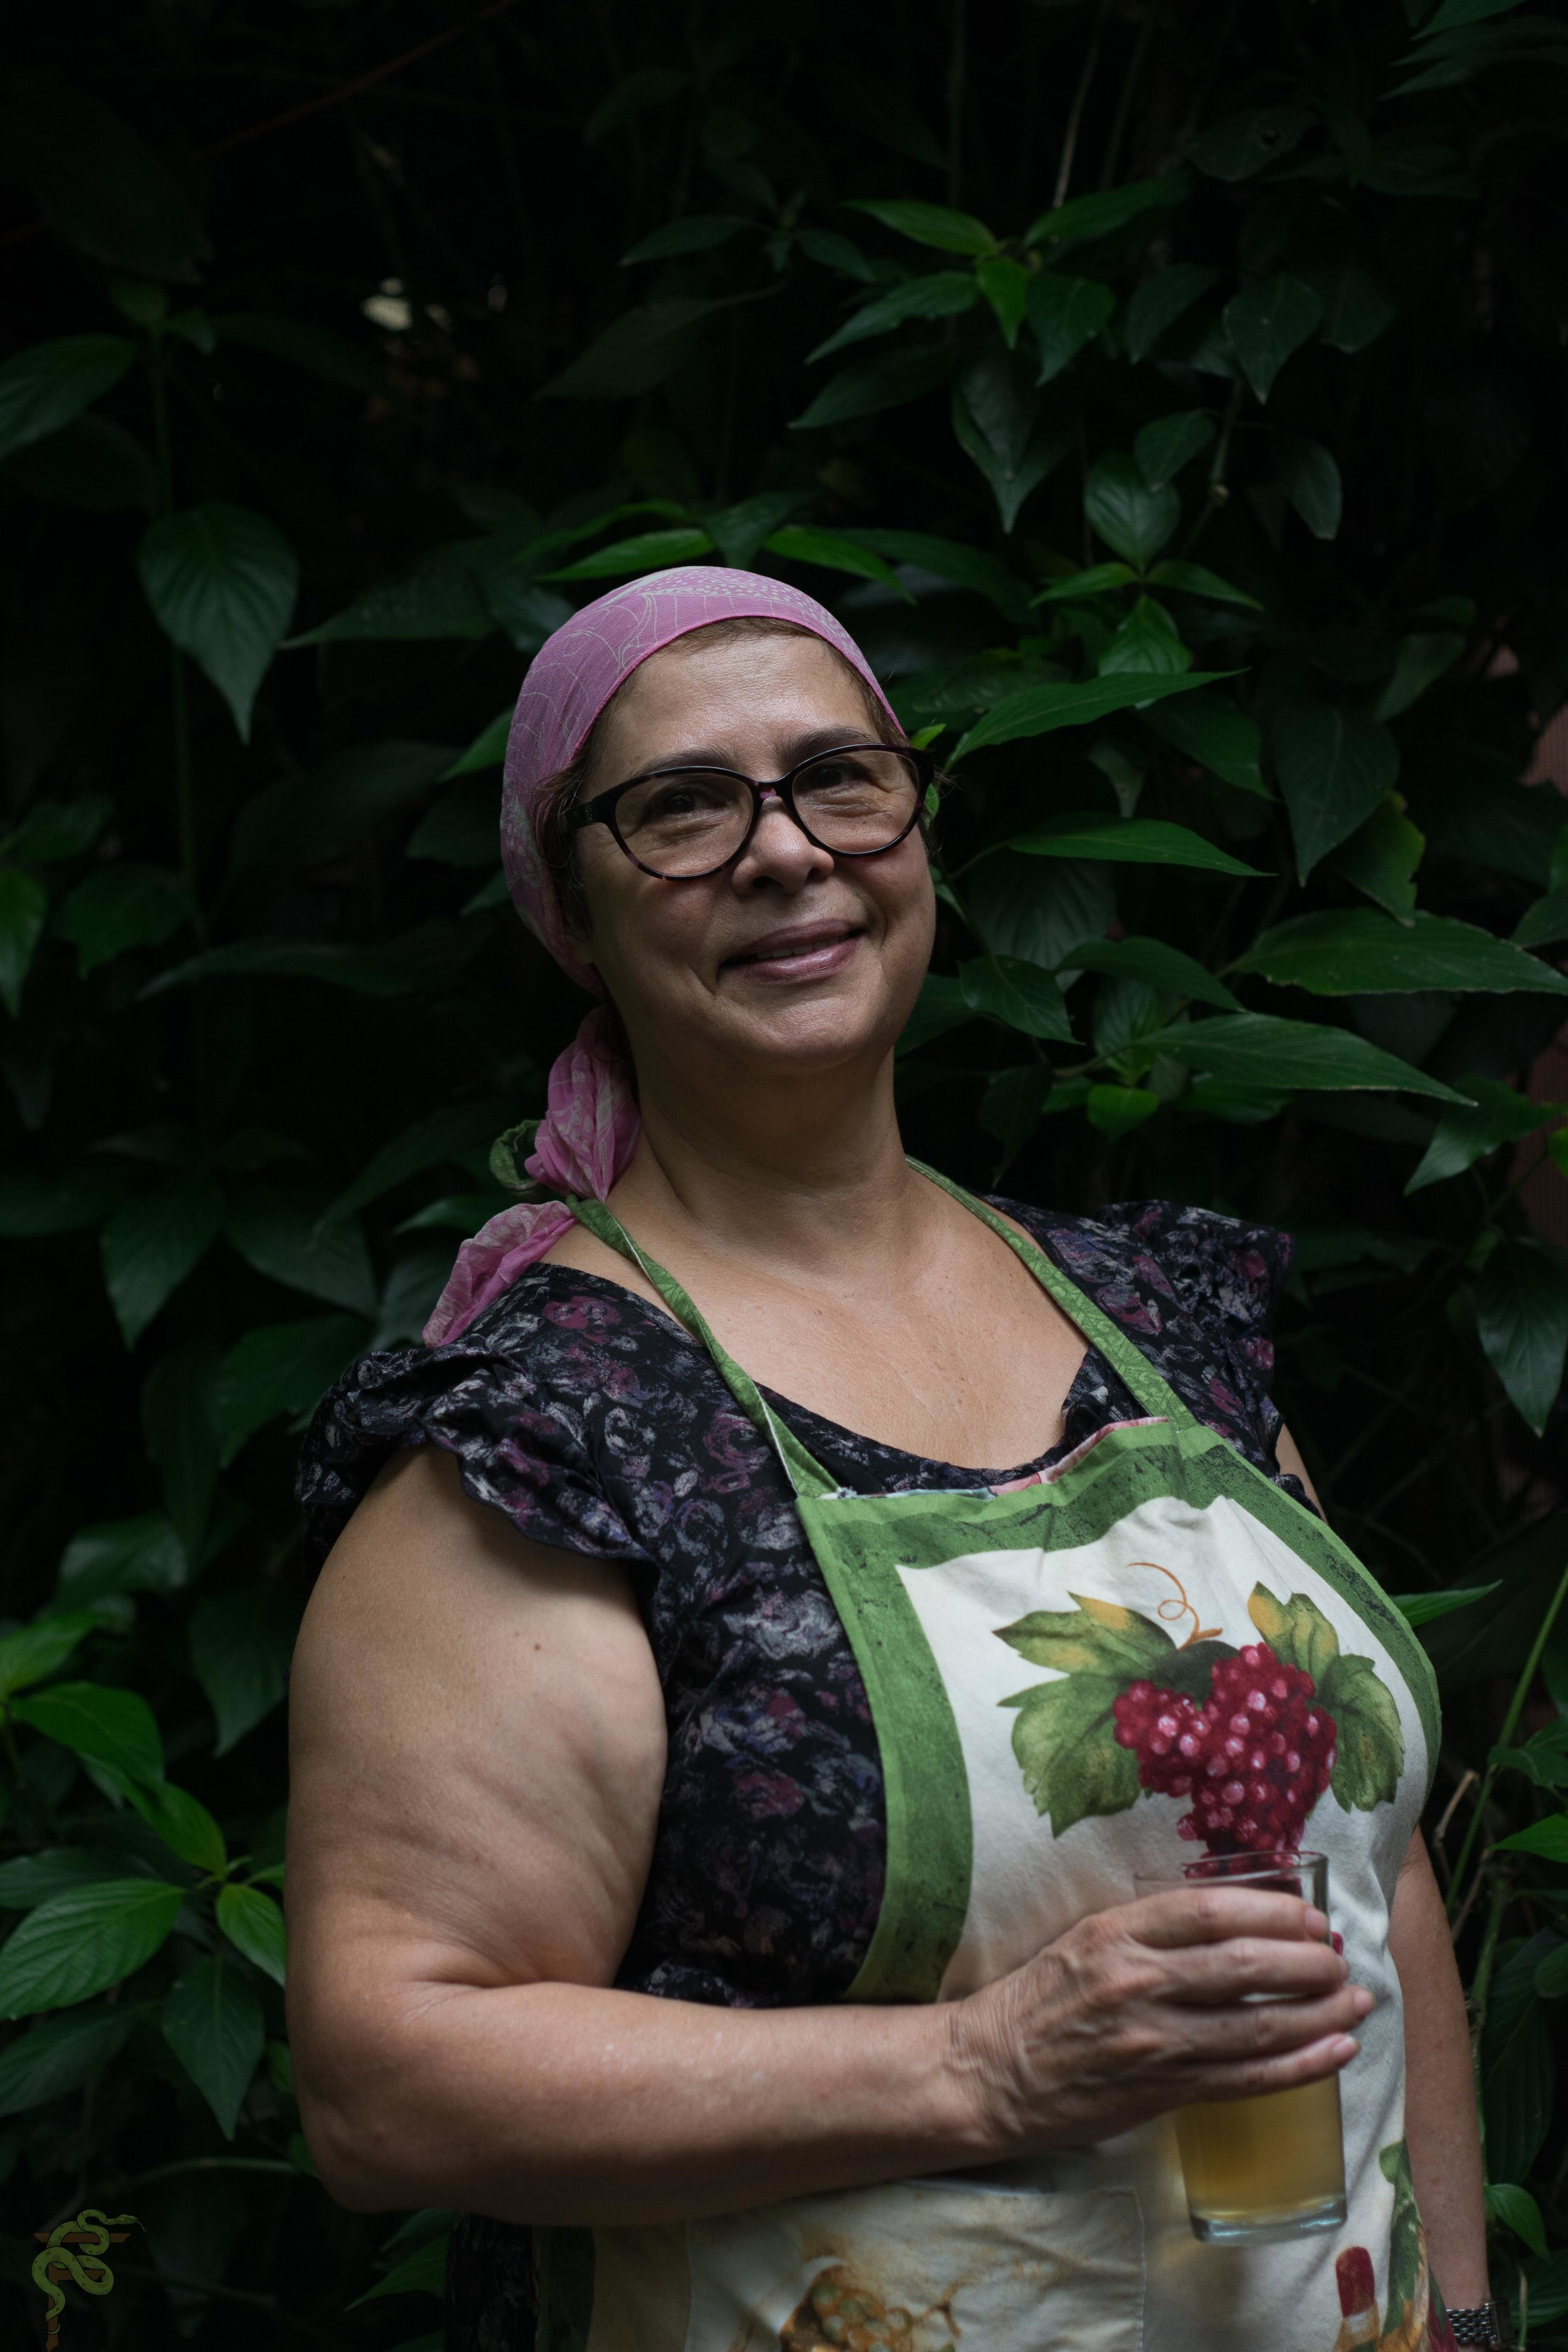 Doña Mireya the cook in charge of the lessons with more than 50 years of experience traditional food .